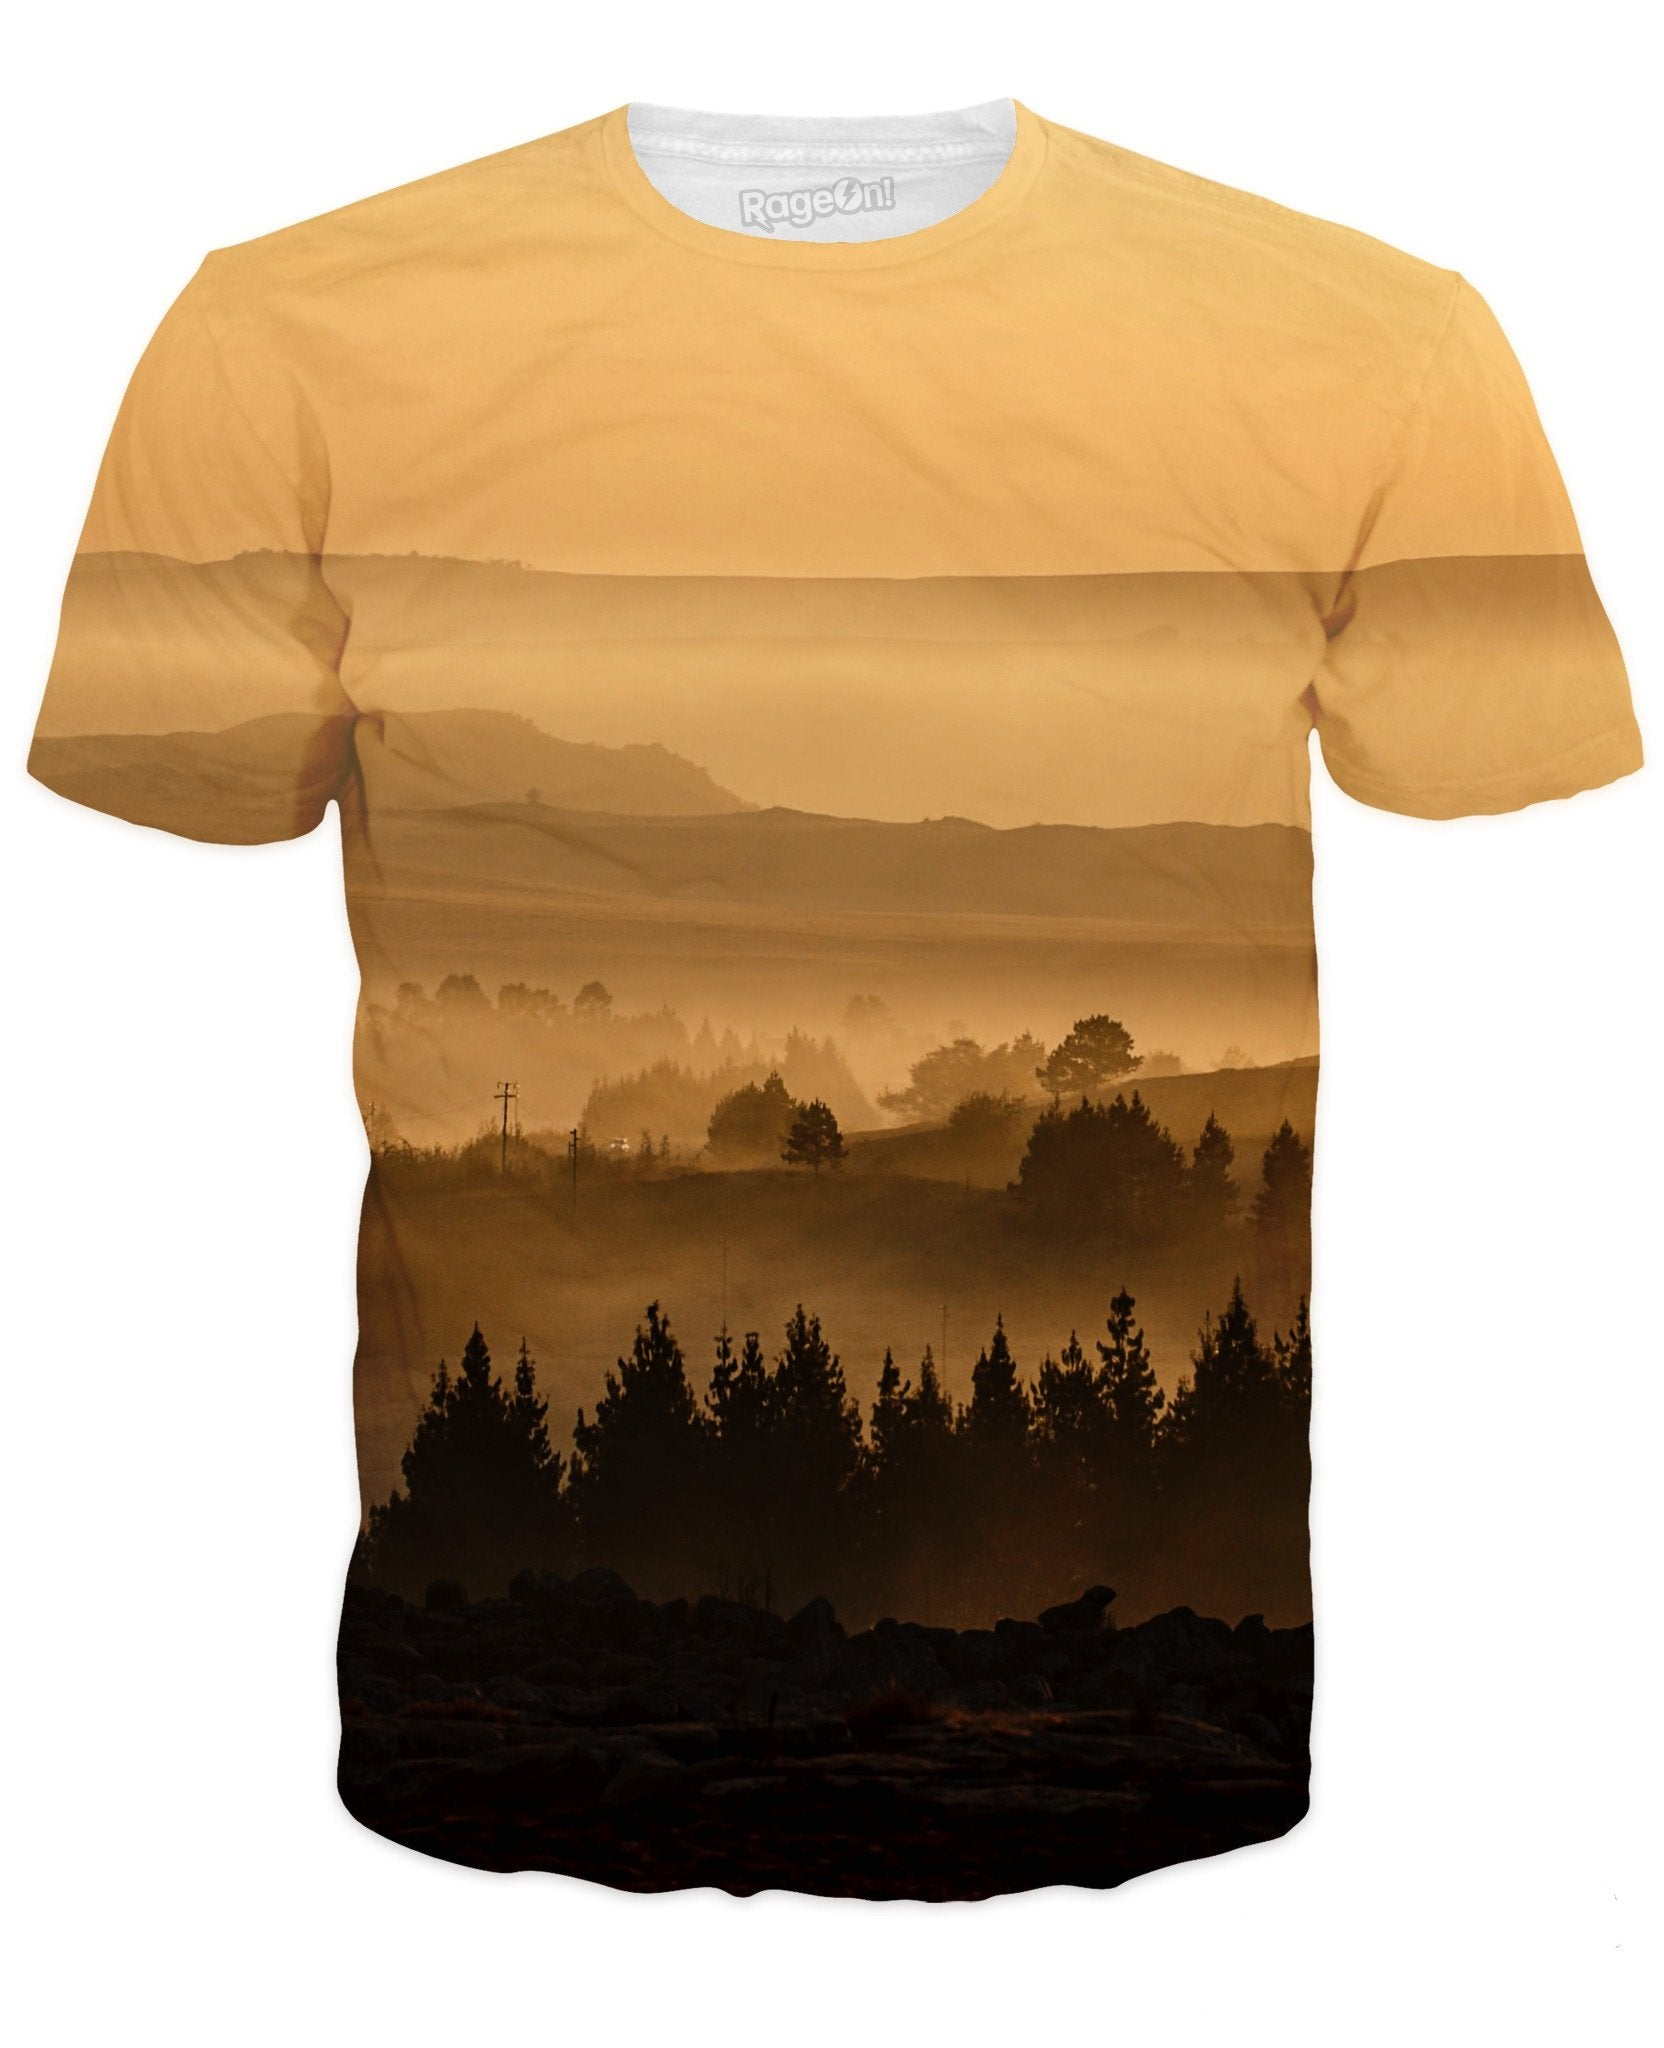 Into the Bliss T-Shirt